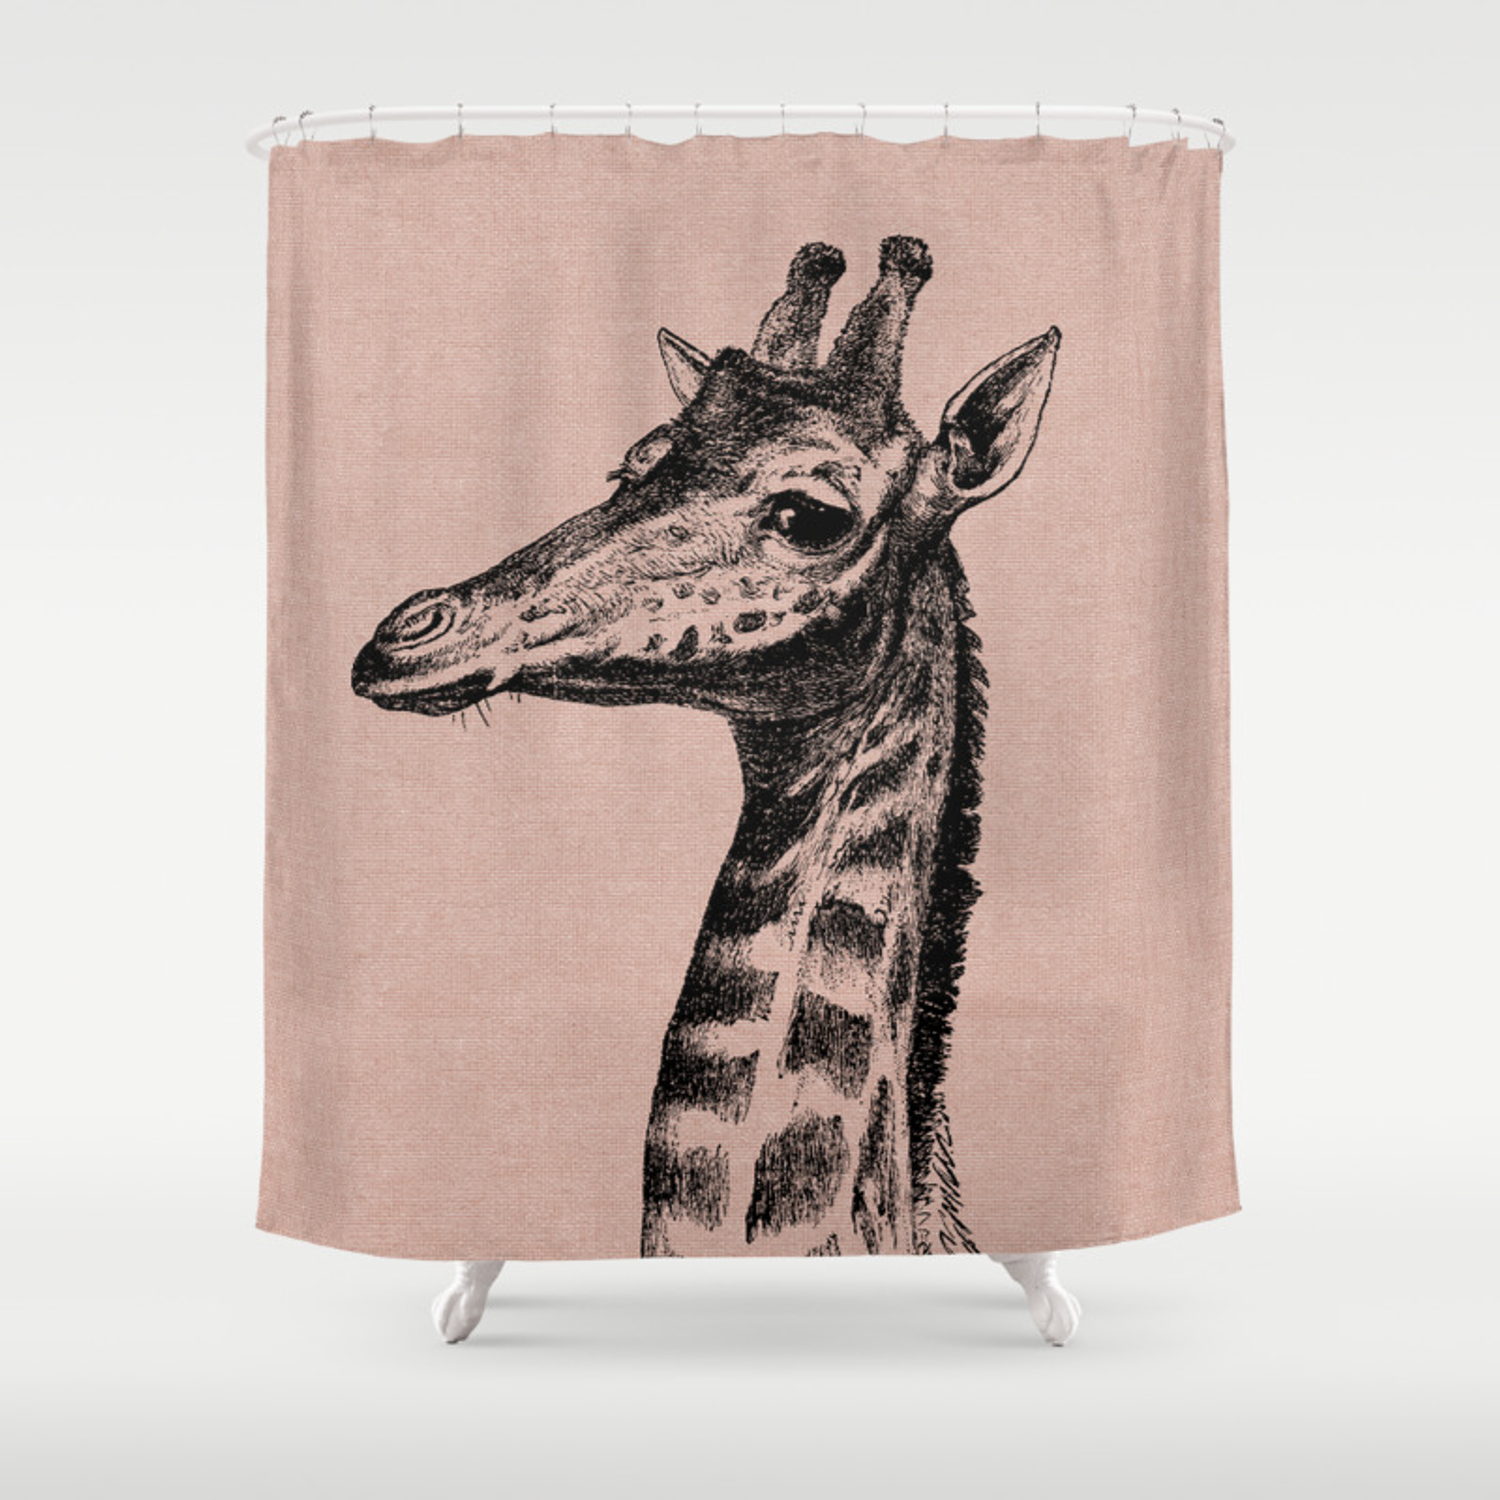 Vintage Giraffe On Natural Blush Linen Shower Curtain